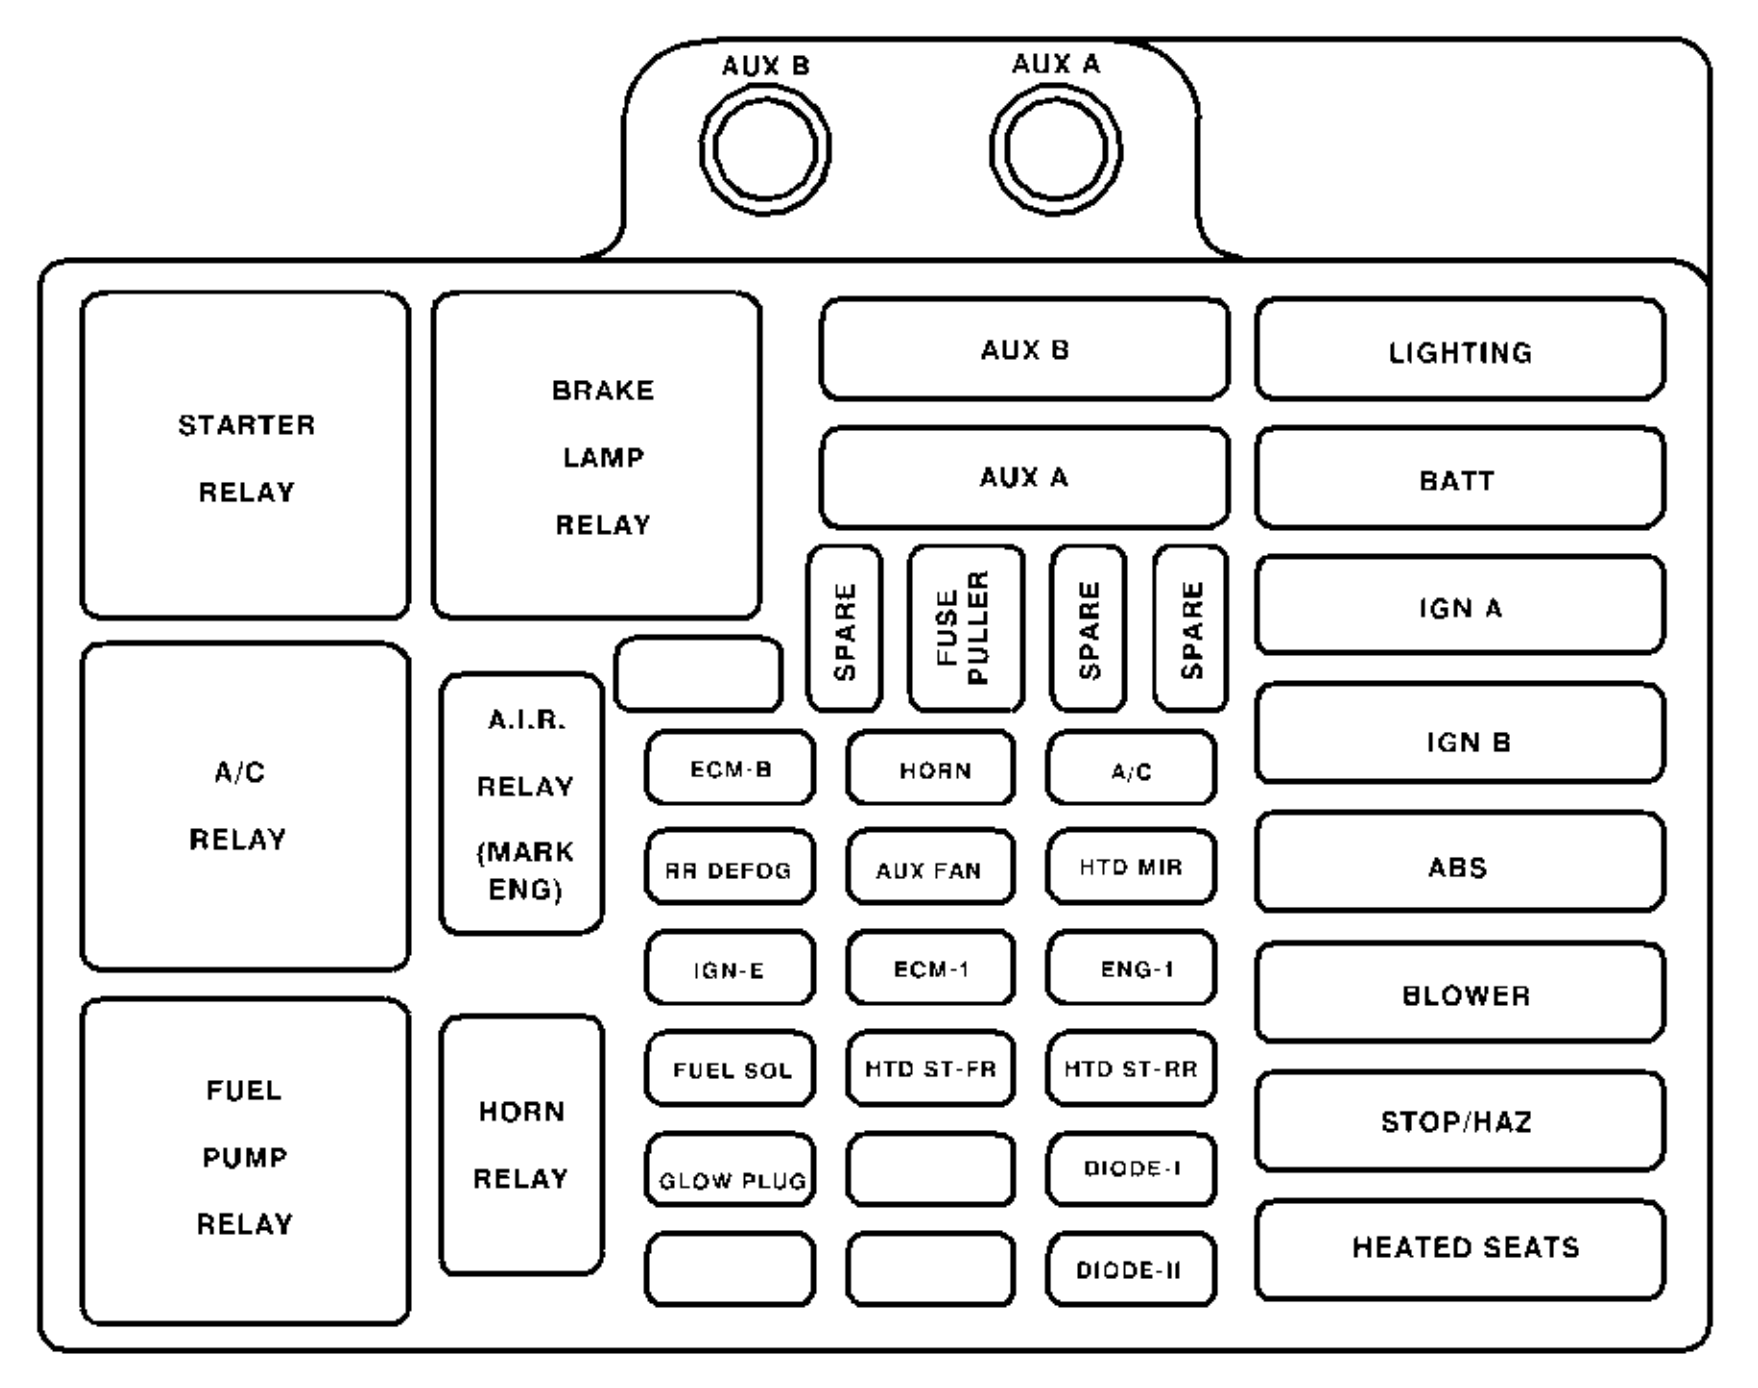 1994 chevrolet silverado 1500 fuse box diagram  chevrolet